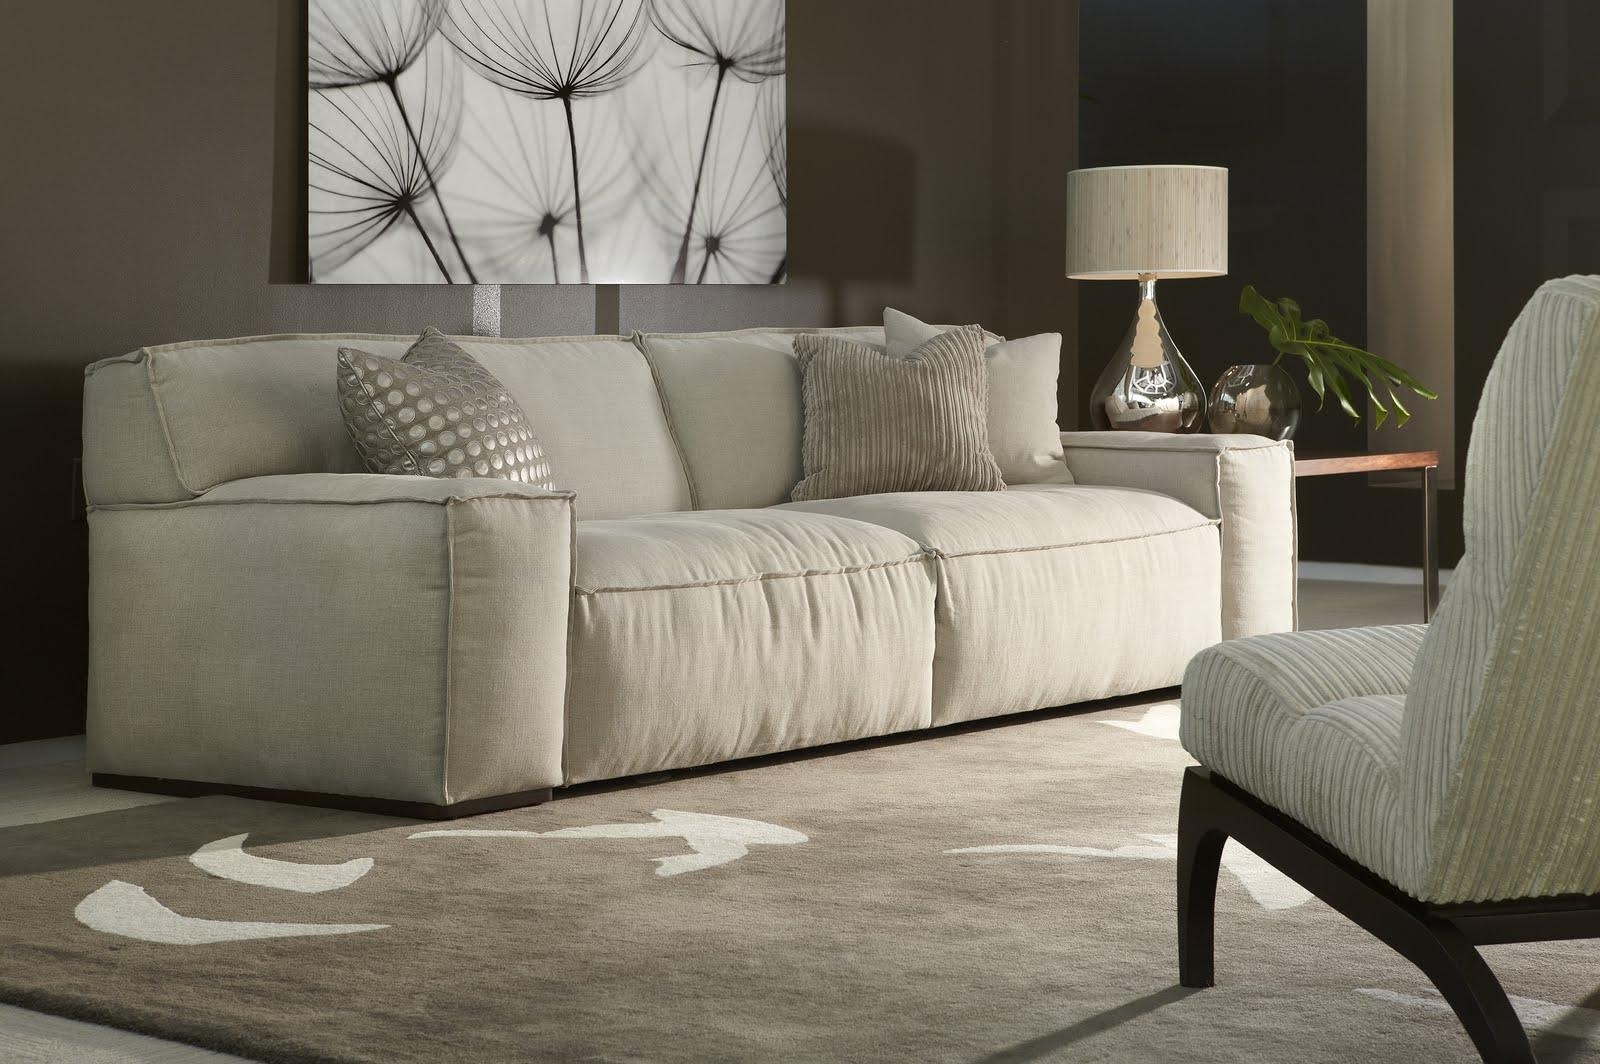 Sofas Center : Excellent Down Sectional Sofa Images Concept Throughout Goose Down Sectional Sofa (View 7 of 15)